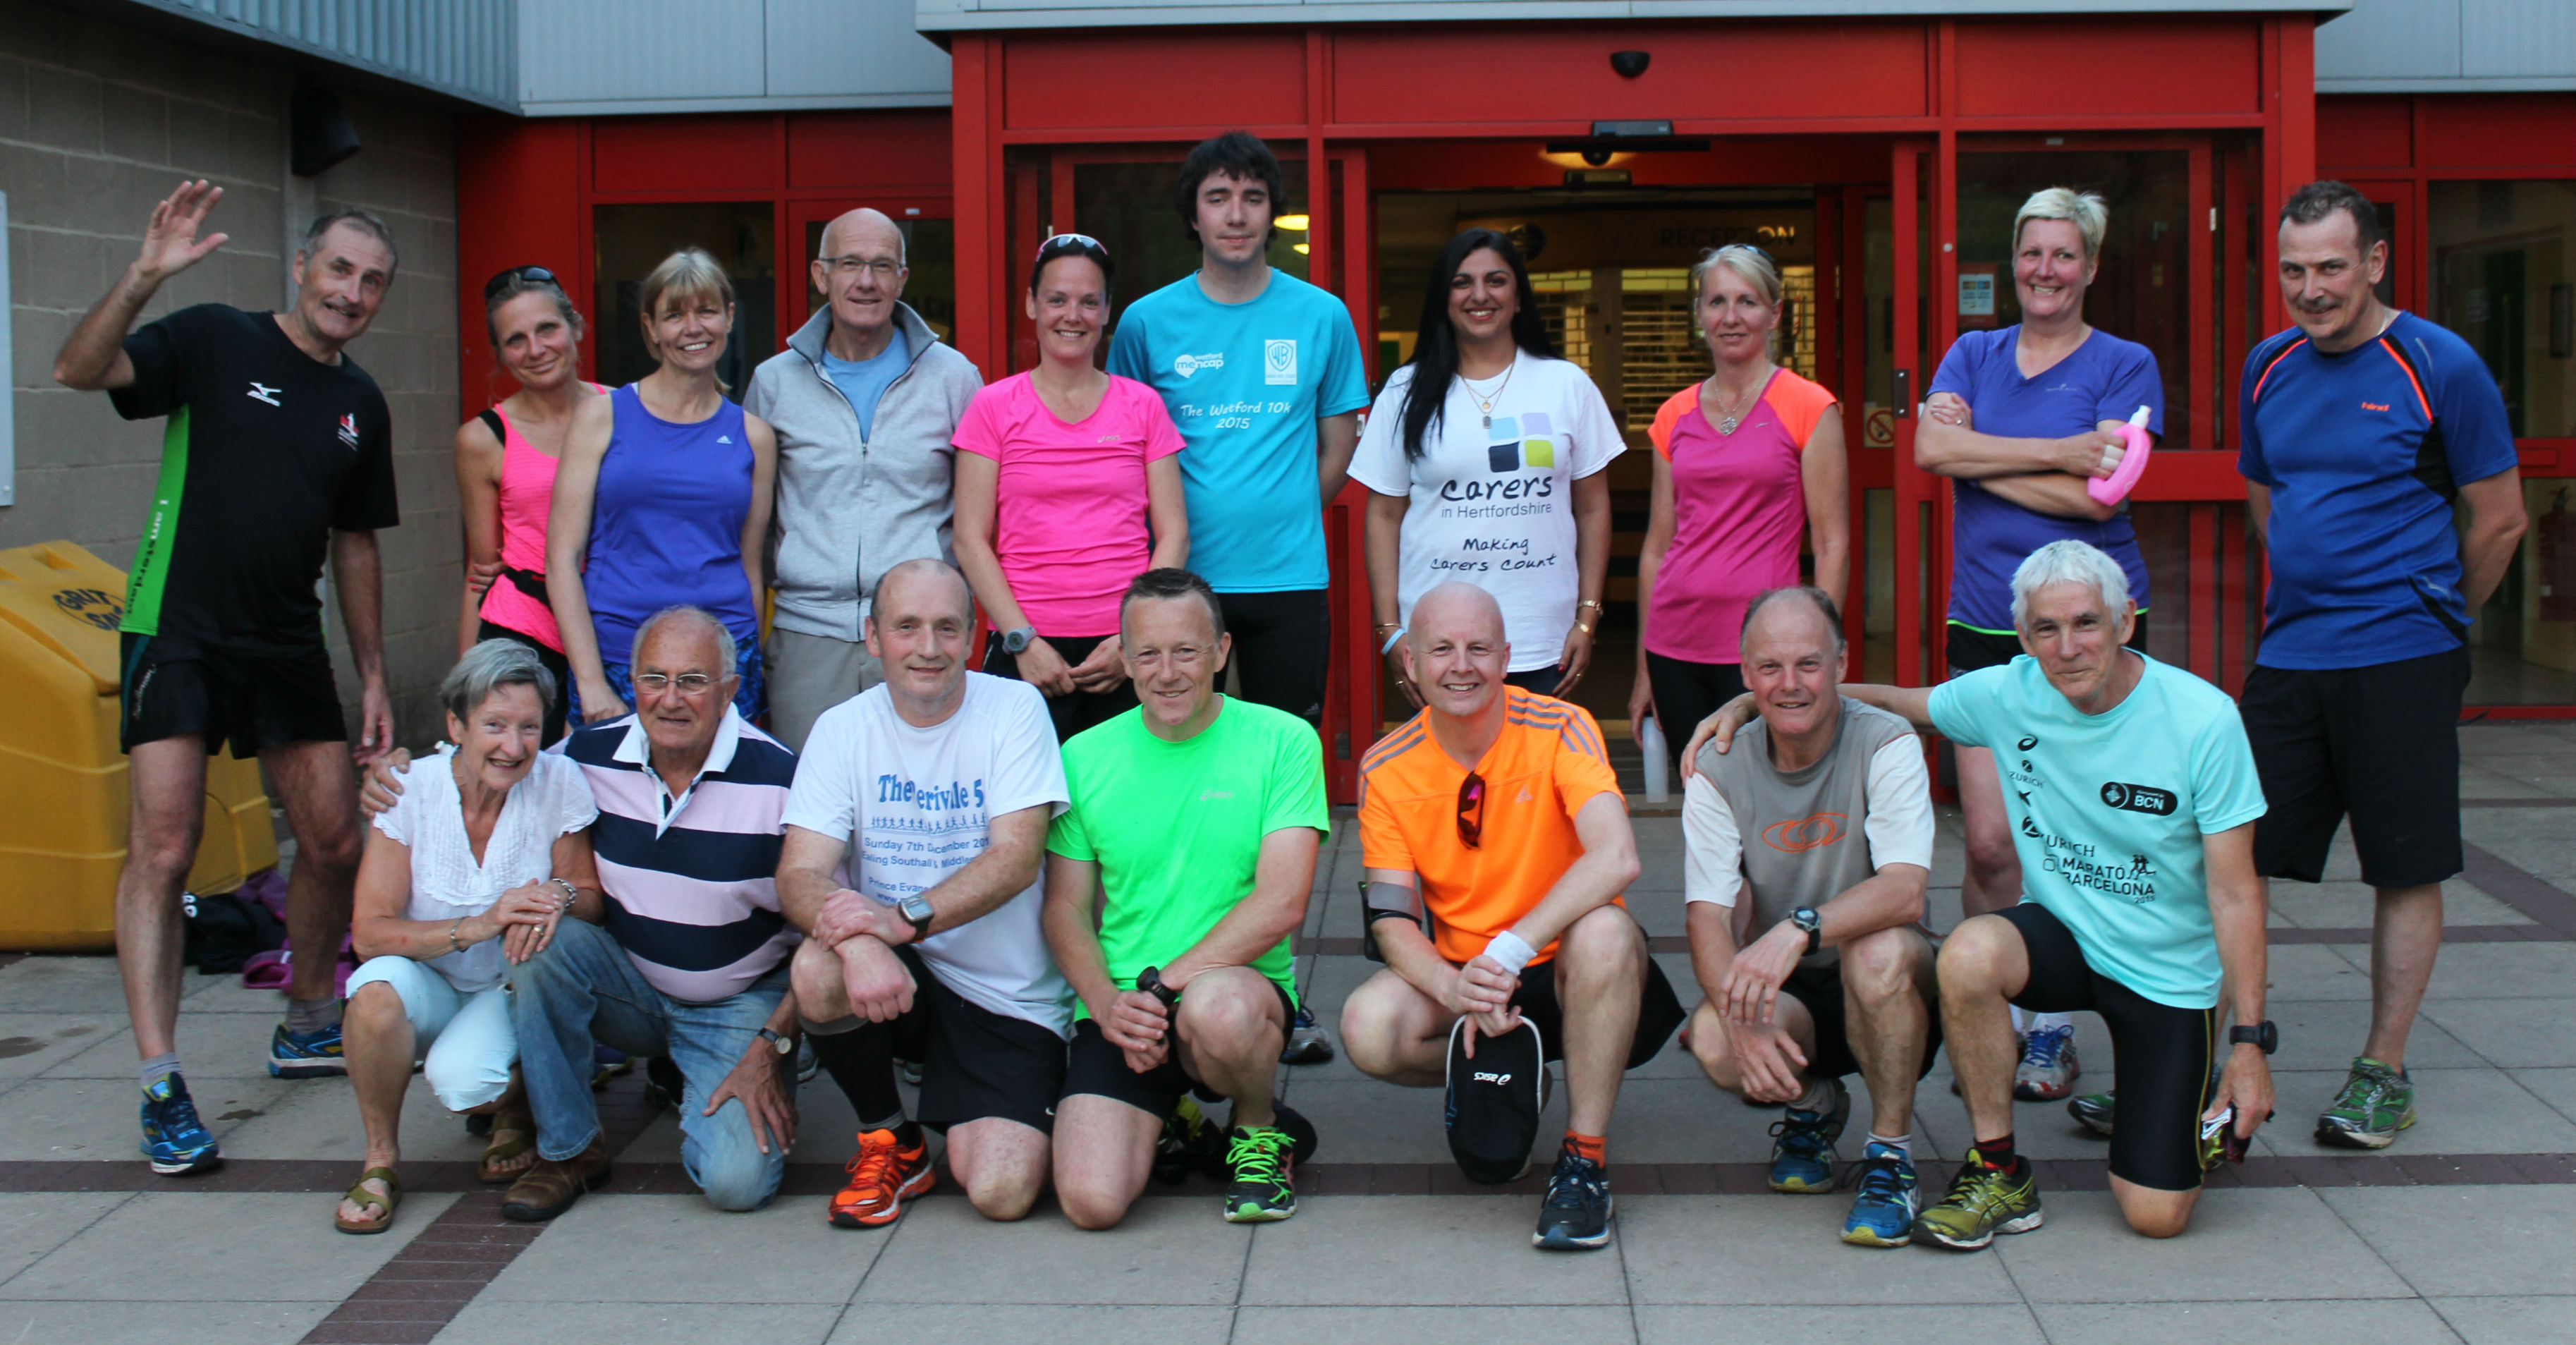 Ware Joggers Charity Partnership